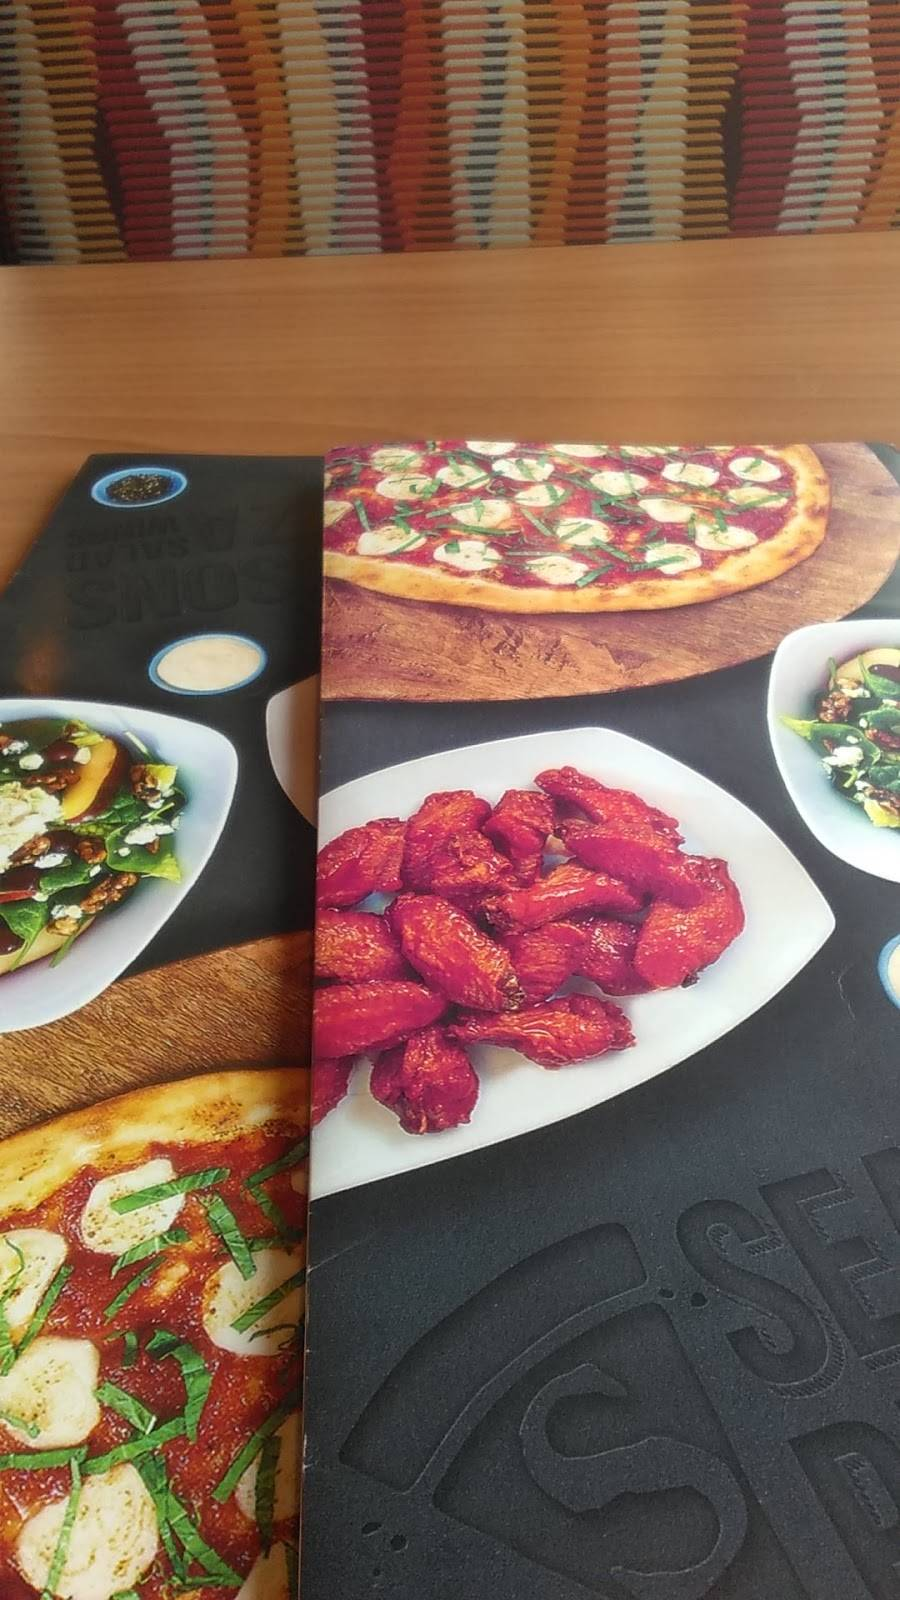 Seasons Pizza   meal delivery   1112 Kirkwood Hwy, Wilmington, DE 19805, USA   3029944000 OR +1 302-994-4000